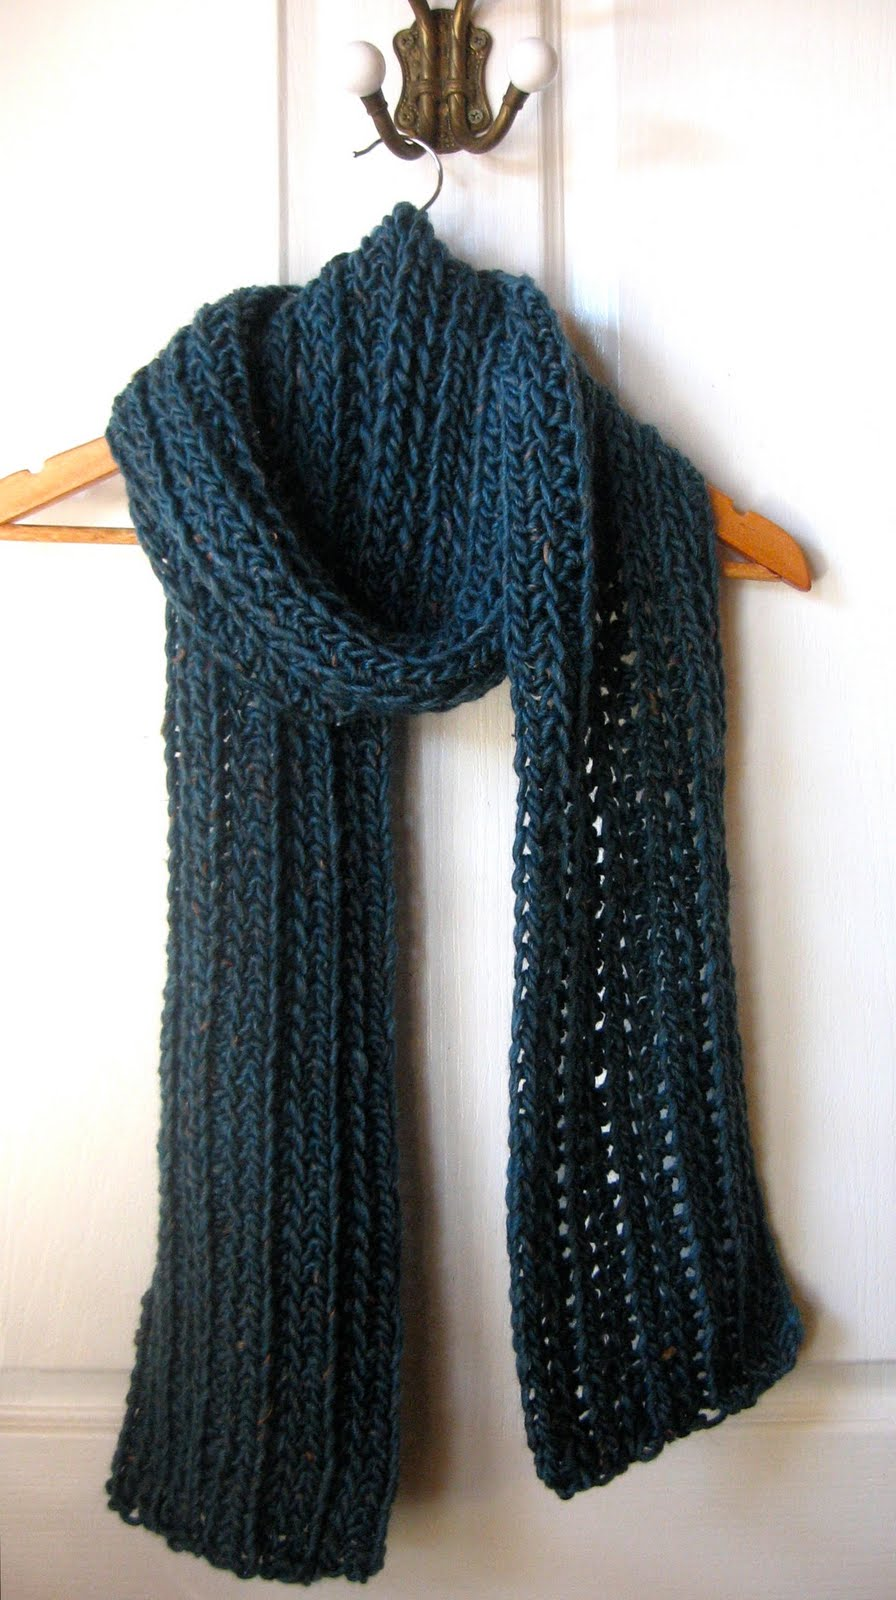 Free Pattern - One Skein Scarf to Crochet - Associated Content